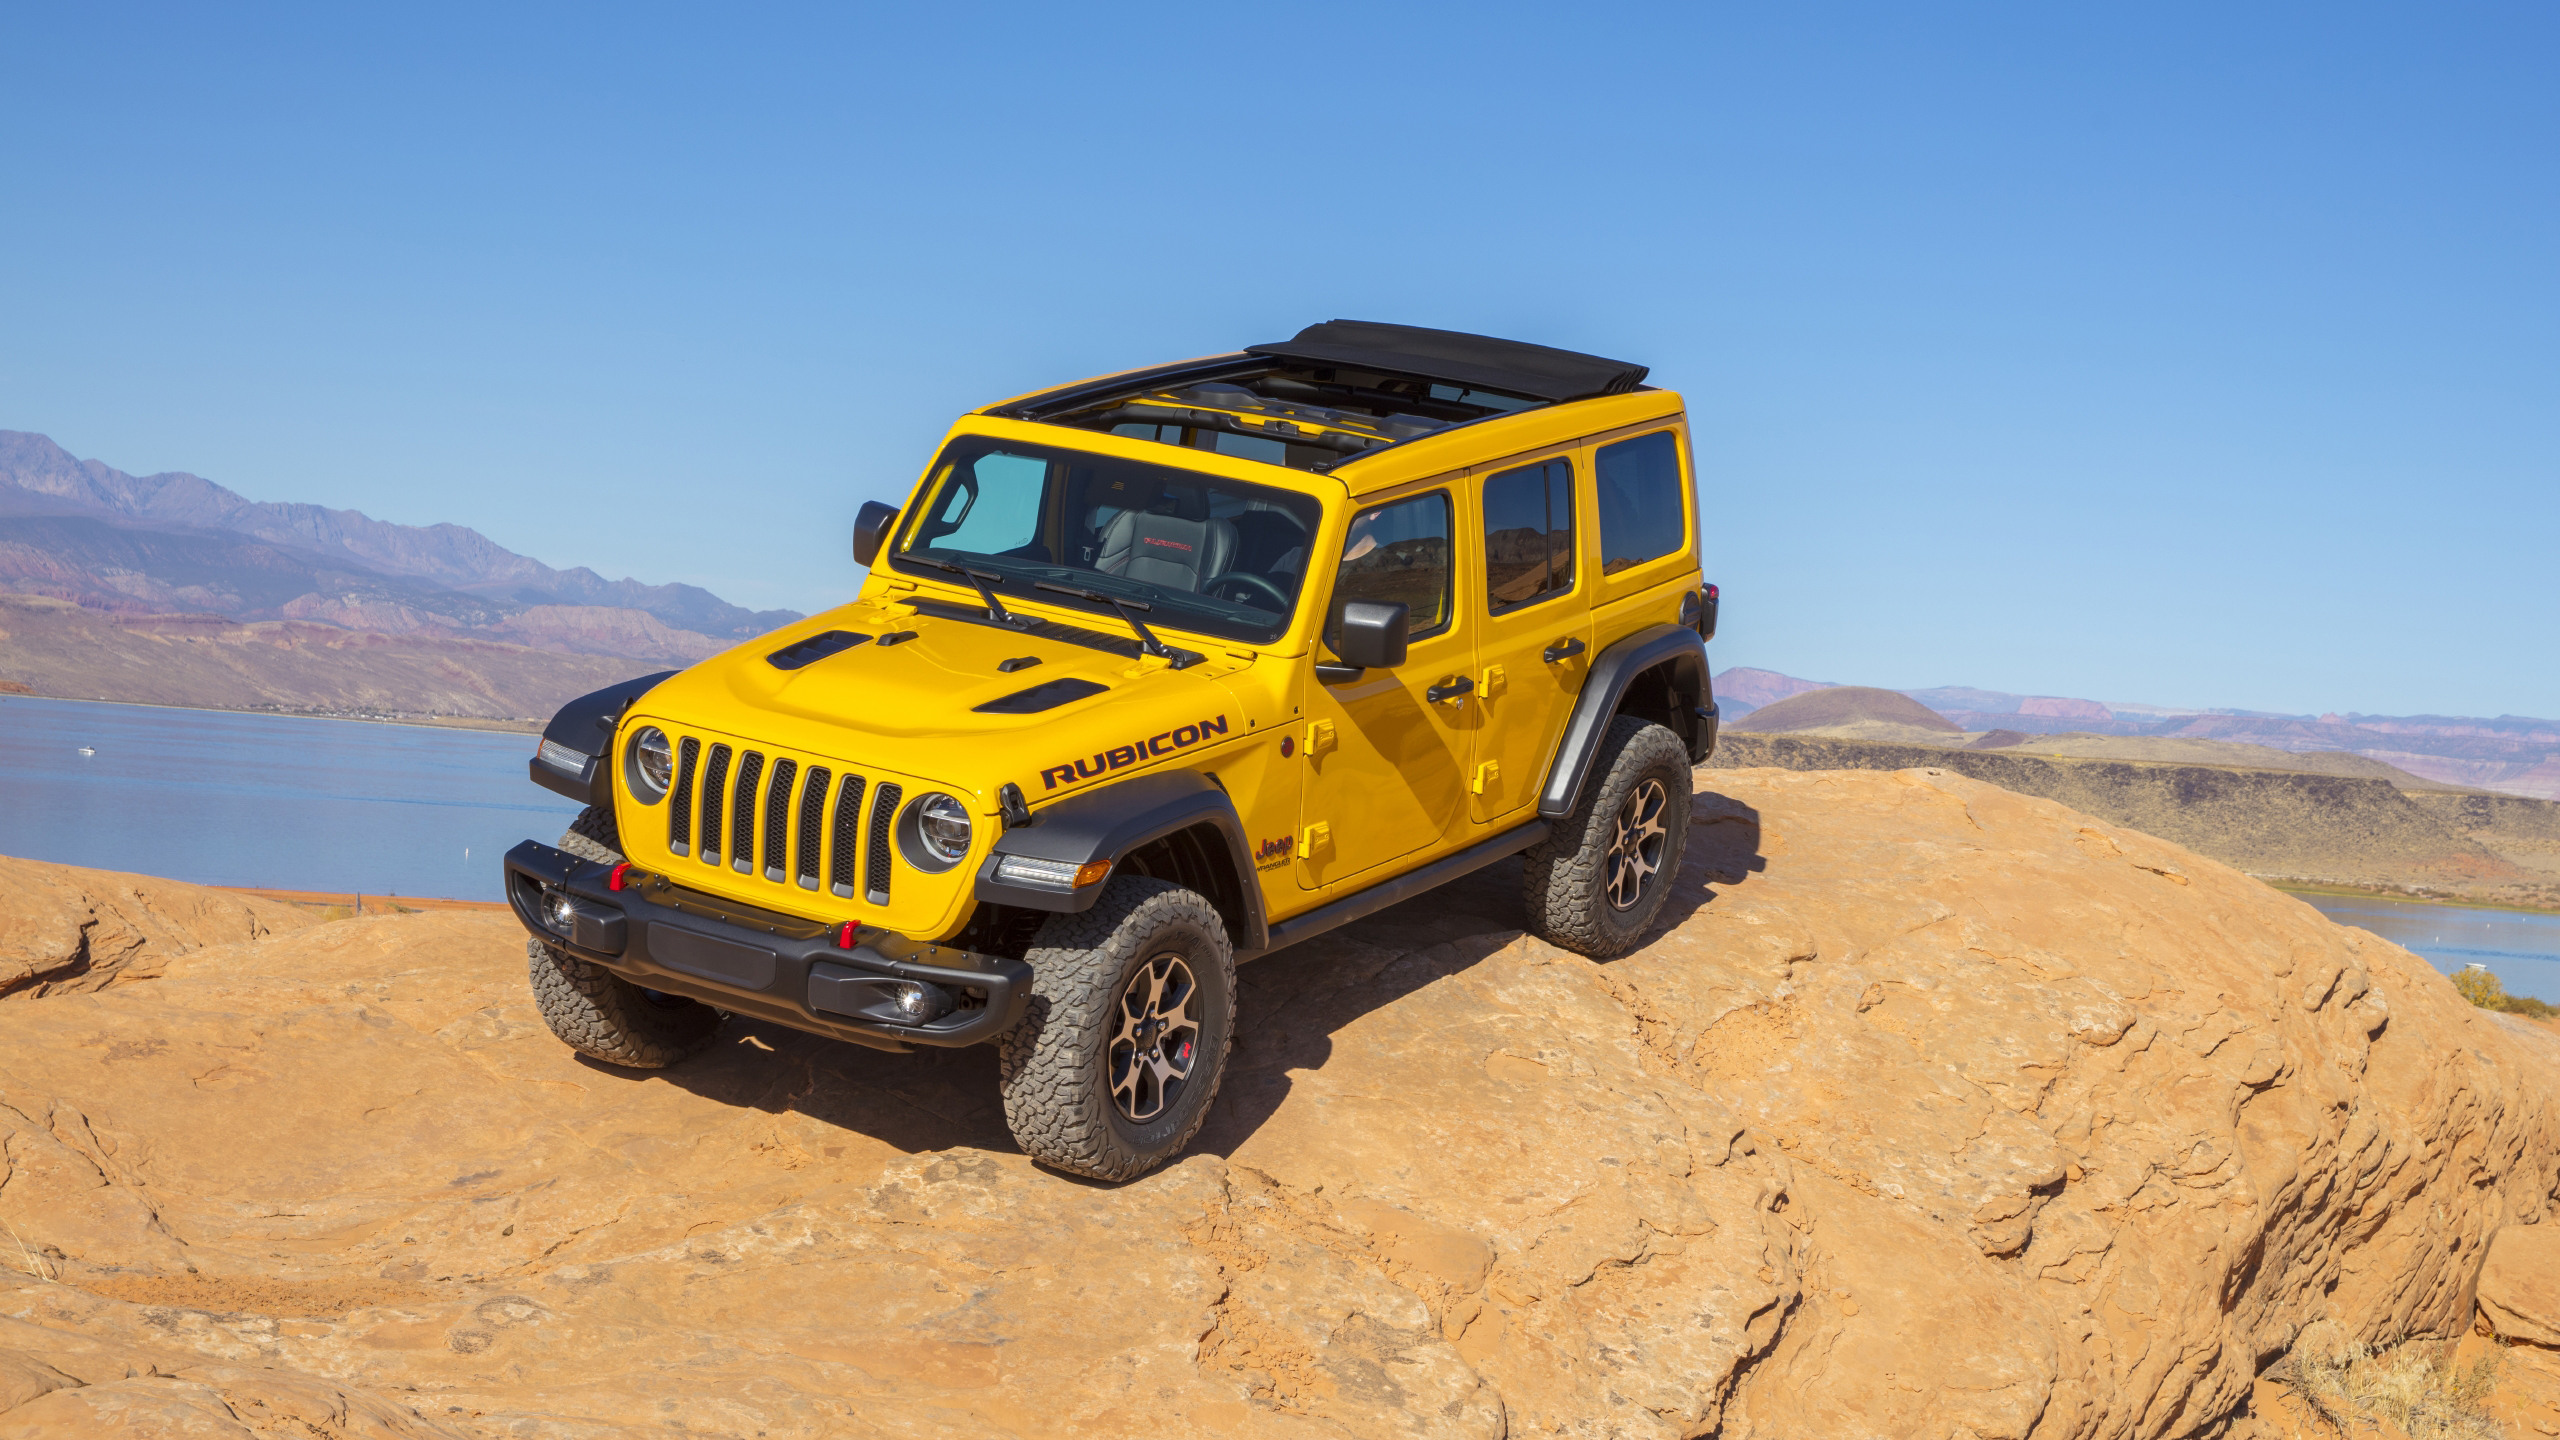 2020 Jeep Wrangler Unlimited Rubicon EcoDiesel Wallpaper ...